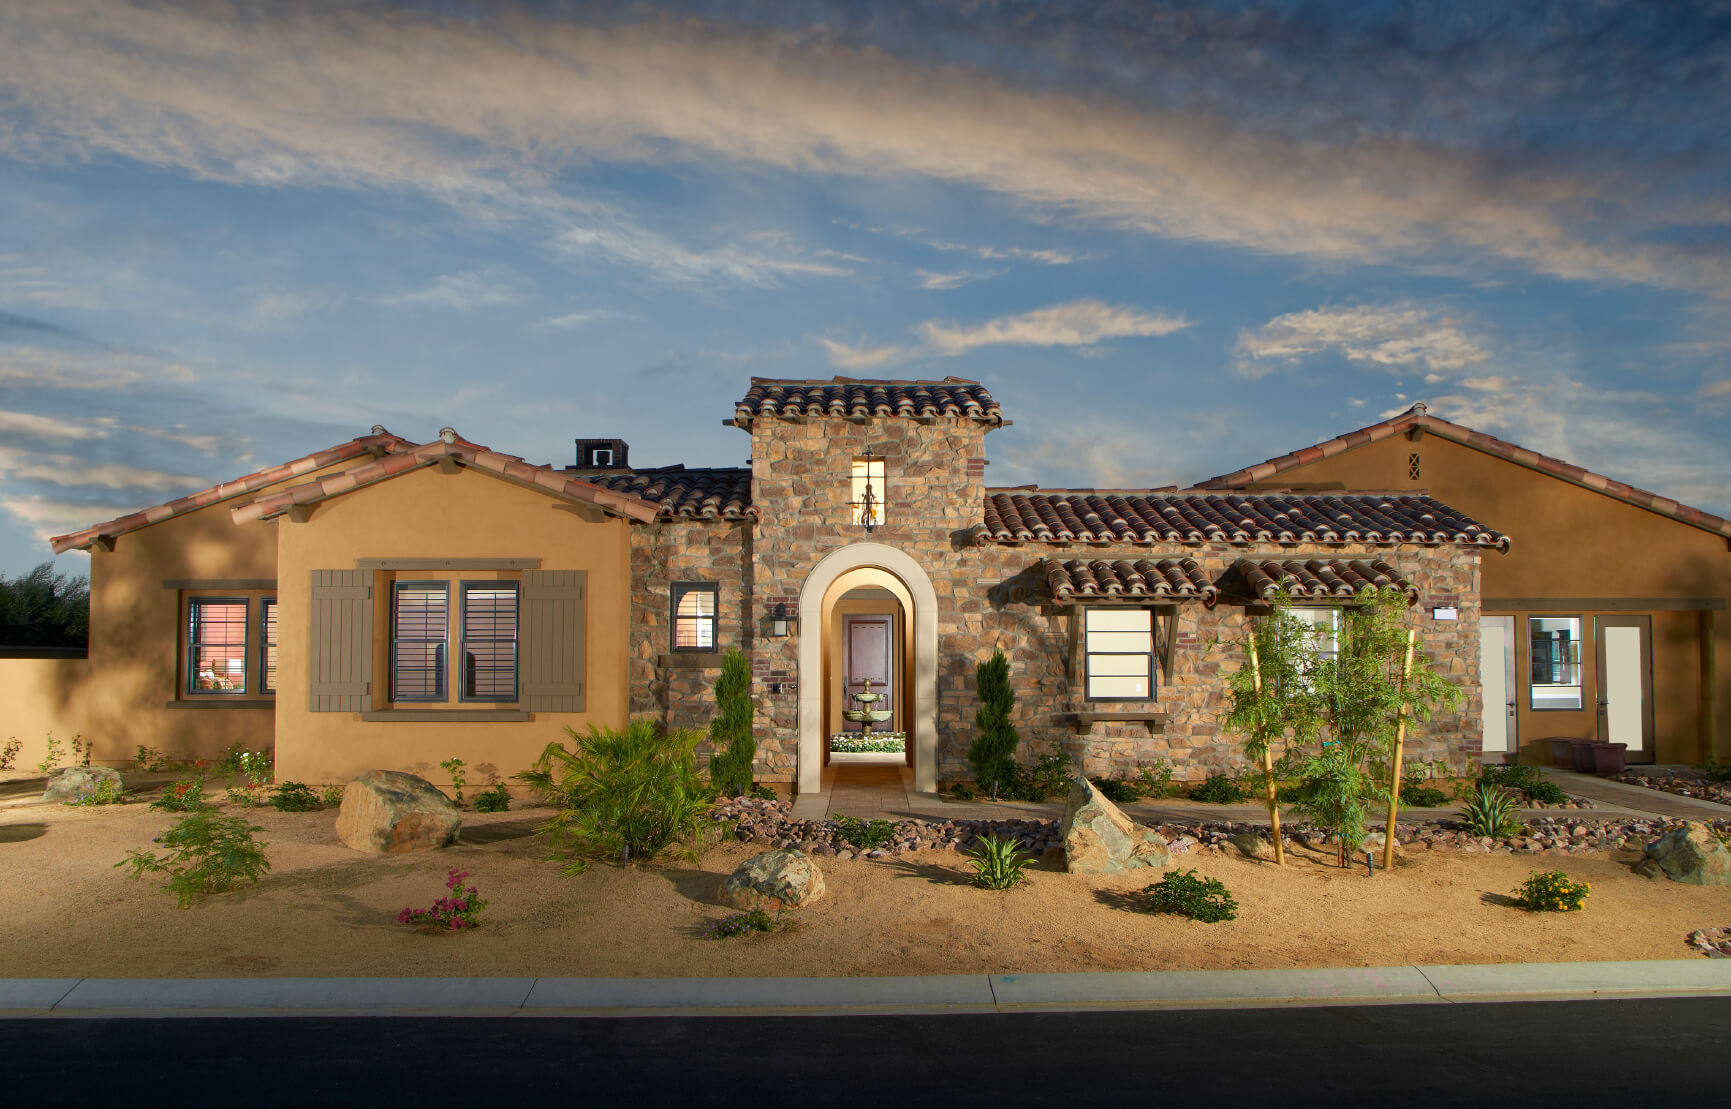 Here is a winning combination of stucco and stone. With there being so many recipes for making stucco, it can be a relatively reasonable price when compared to other exterior materials.